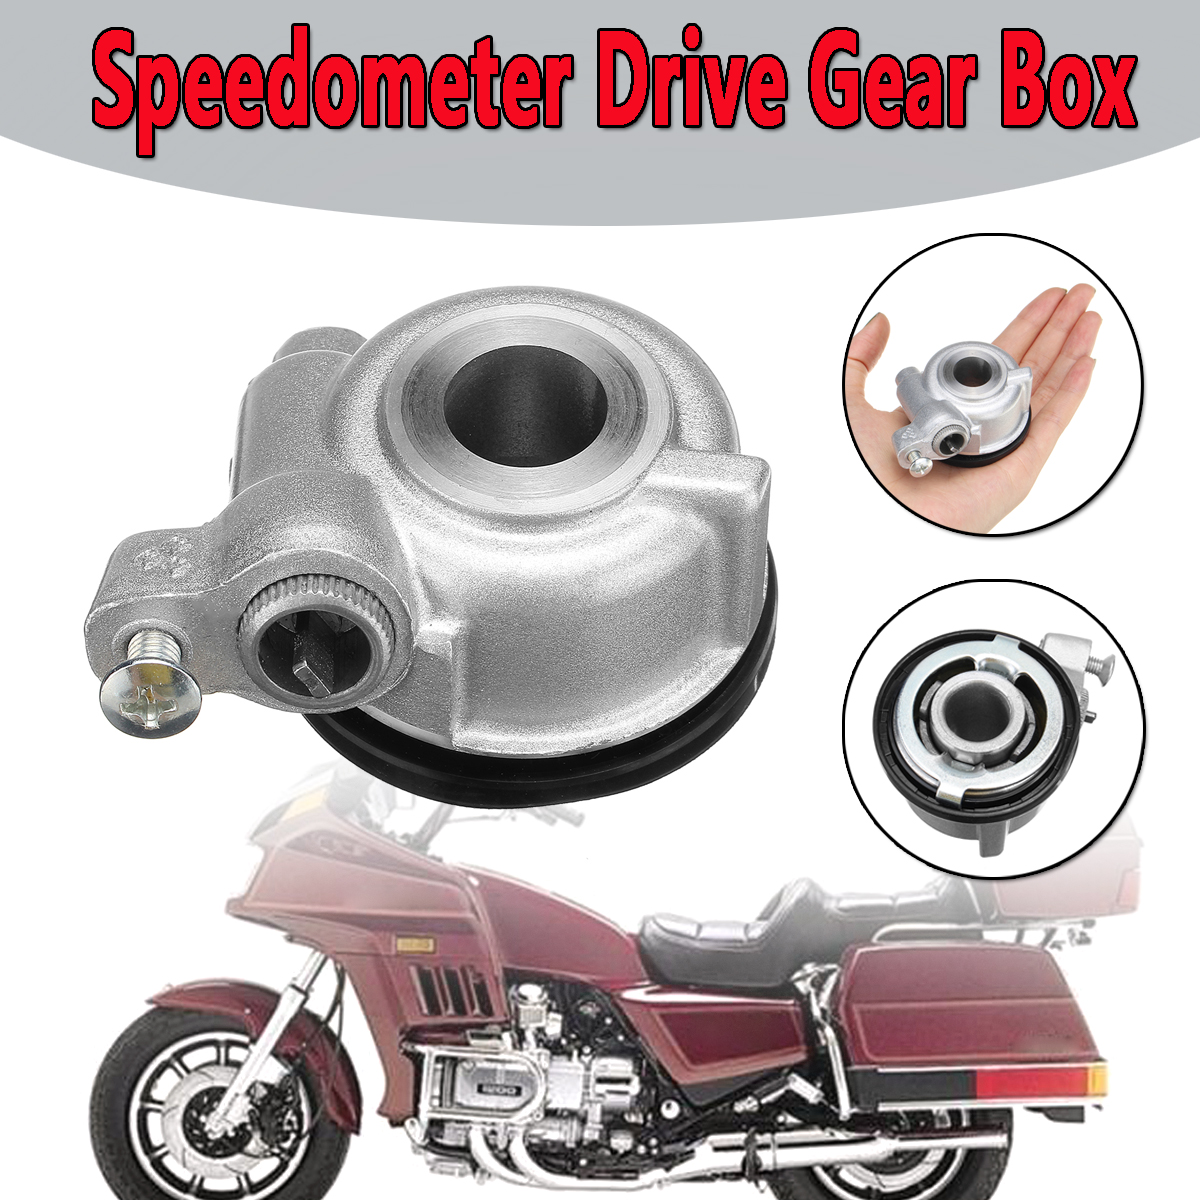 motorcycle speedometer drive gear box new fits for honda goldwing gl1200 1984 1987 scooter parts mg9 013 in covers ornamental mouldings from automobiles  [ 1200 x 1200 Pixel ]